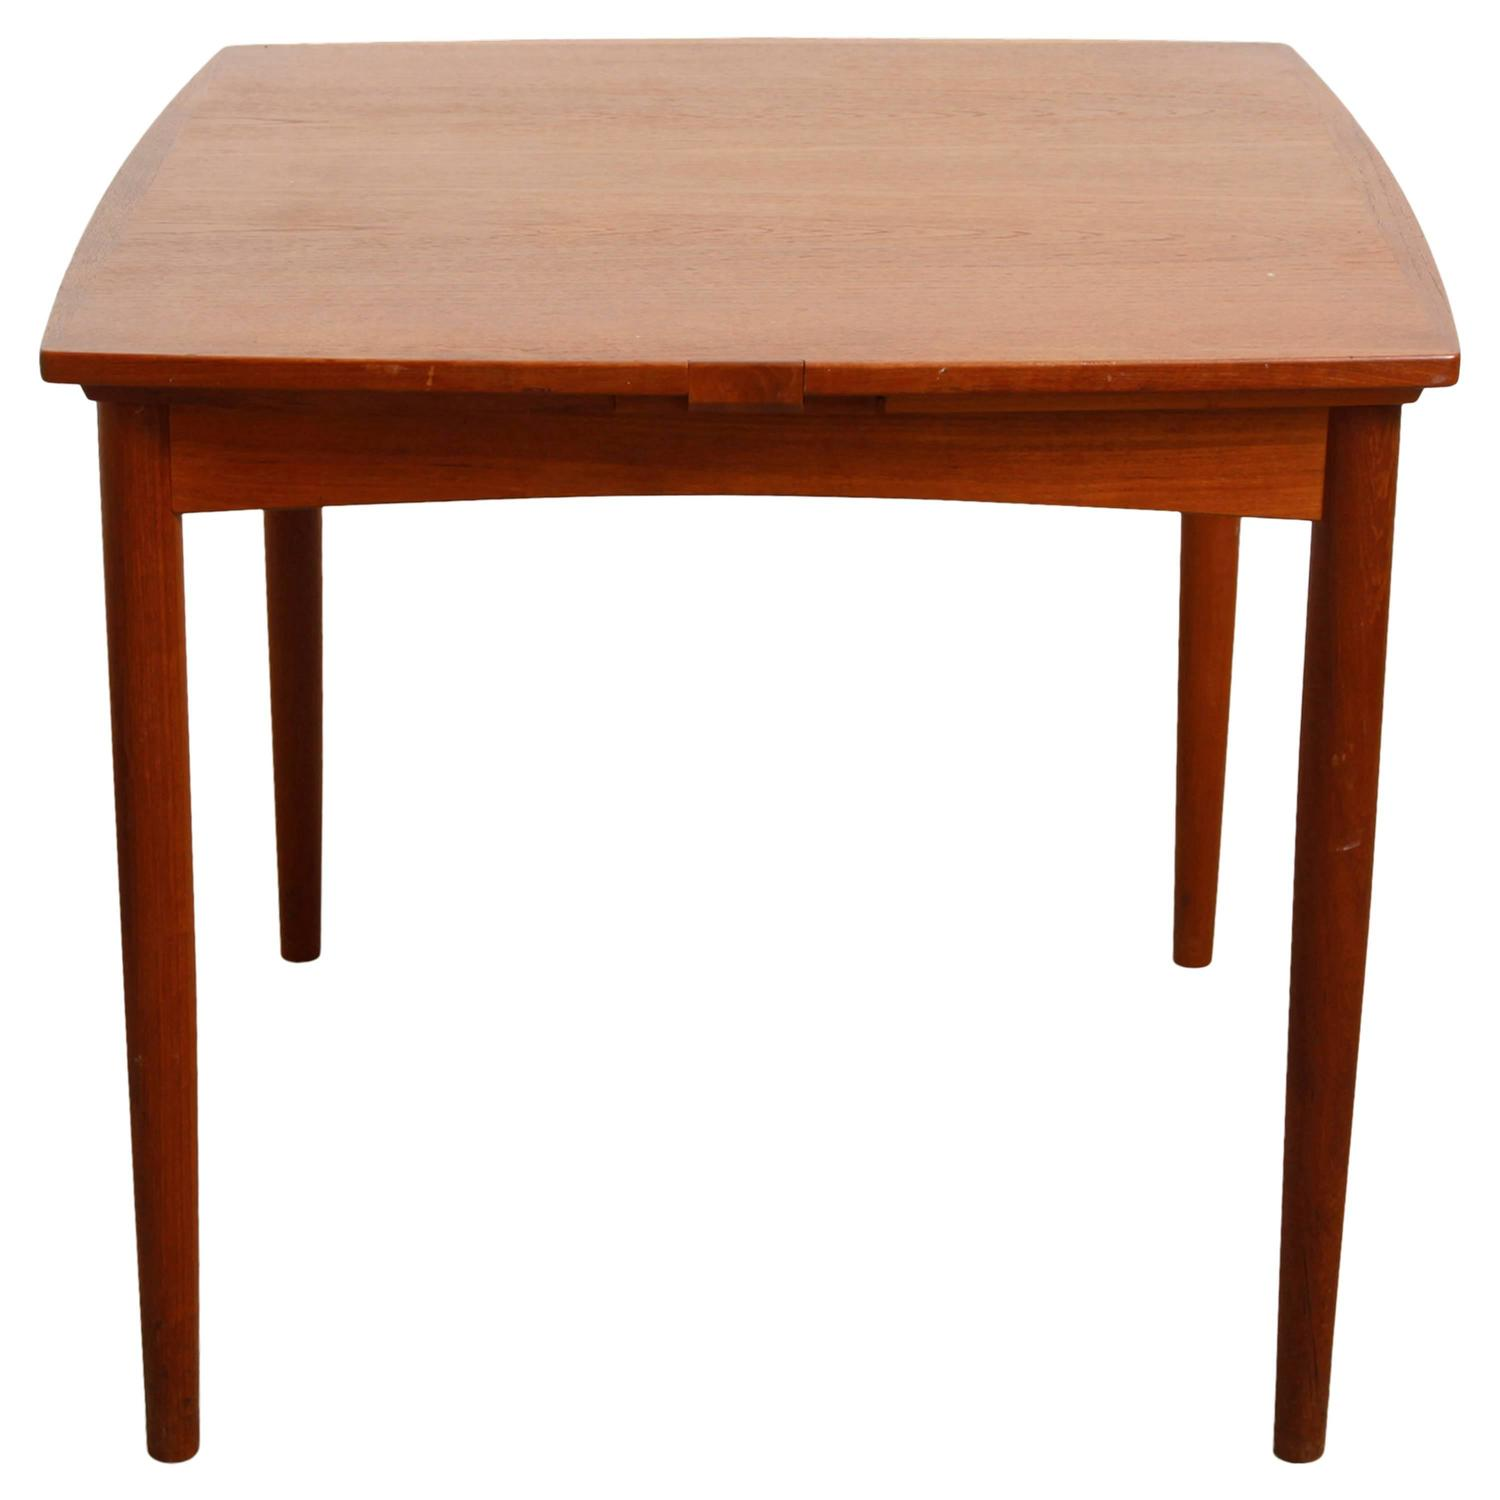 Poul Hundevad Convertible Teak Game Or Dining Table At 1stdibs